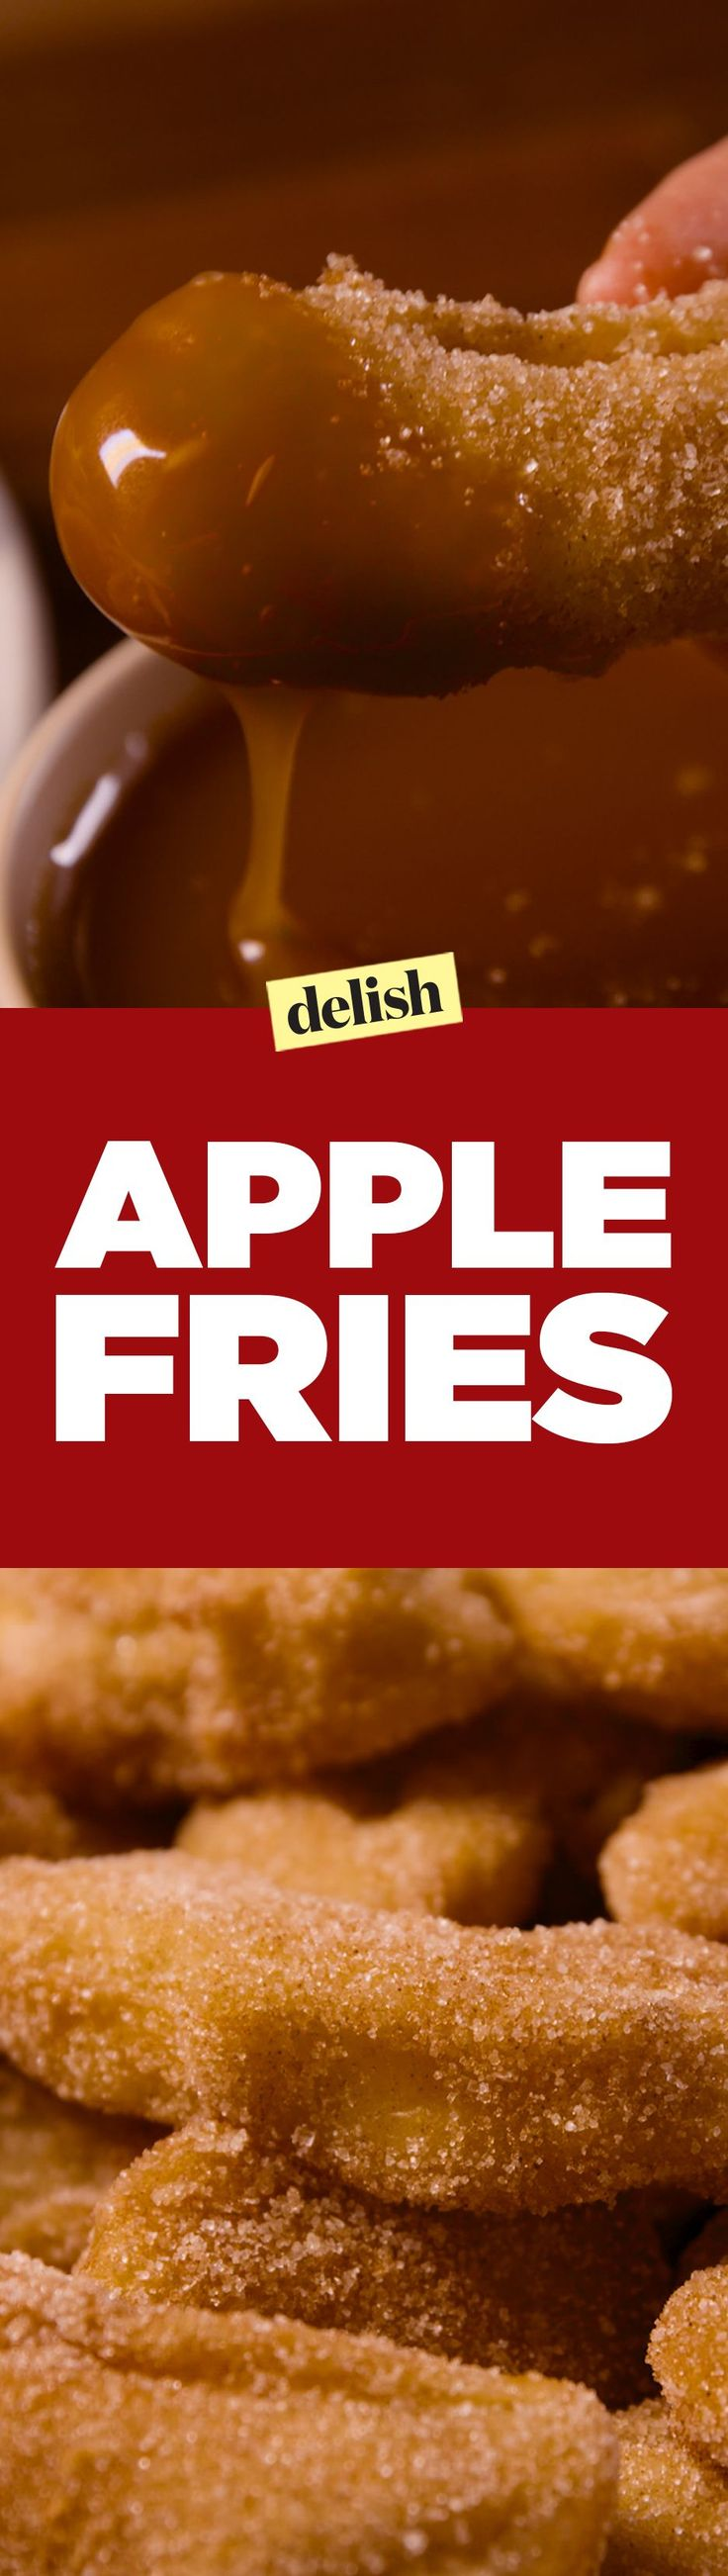 Apple fries dipped in caramel > French fries dipped in ketchup. Get the recipe on Delish.com.